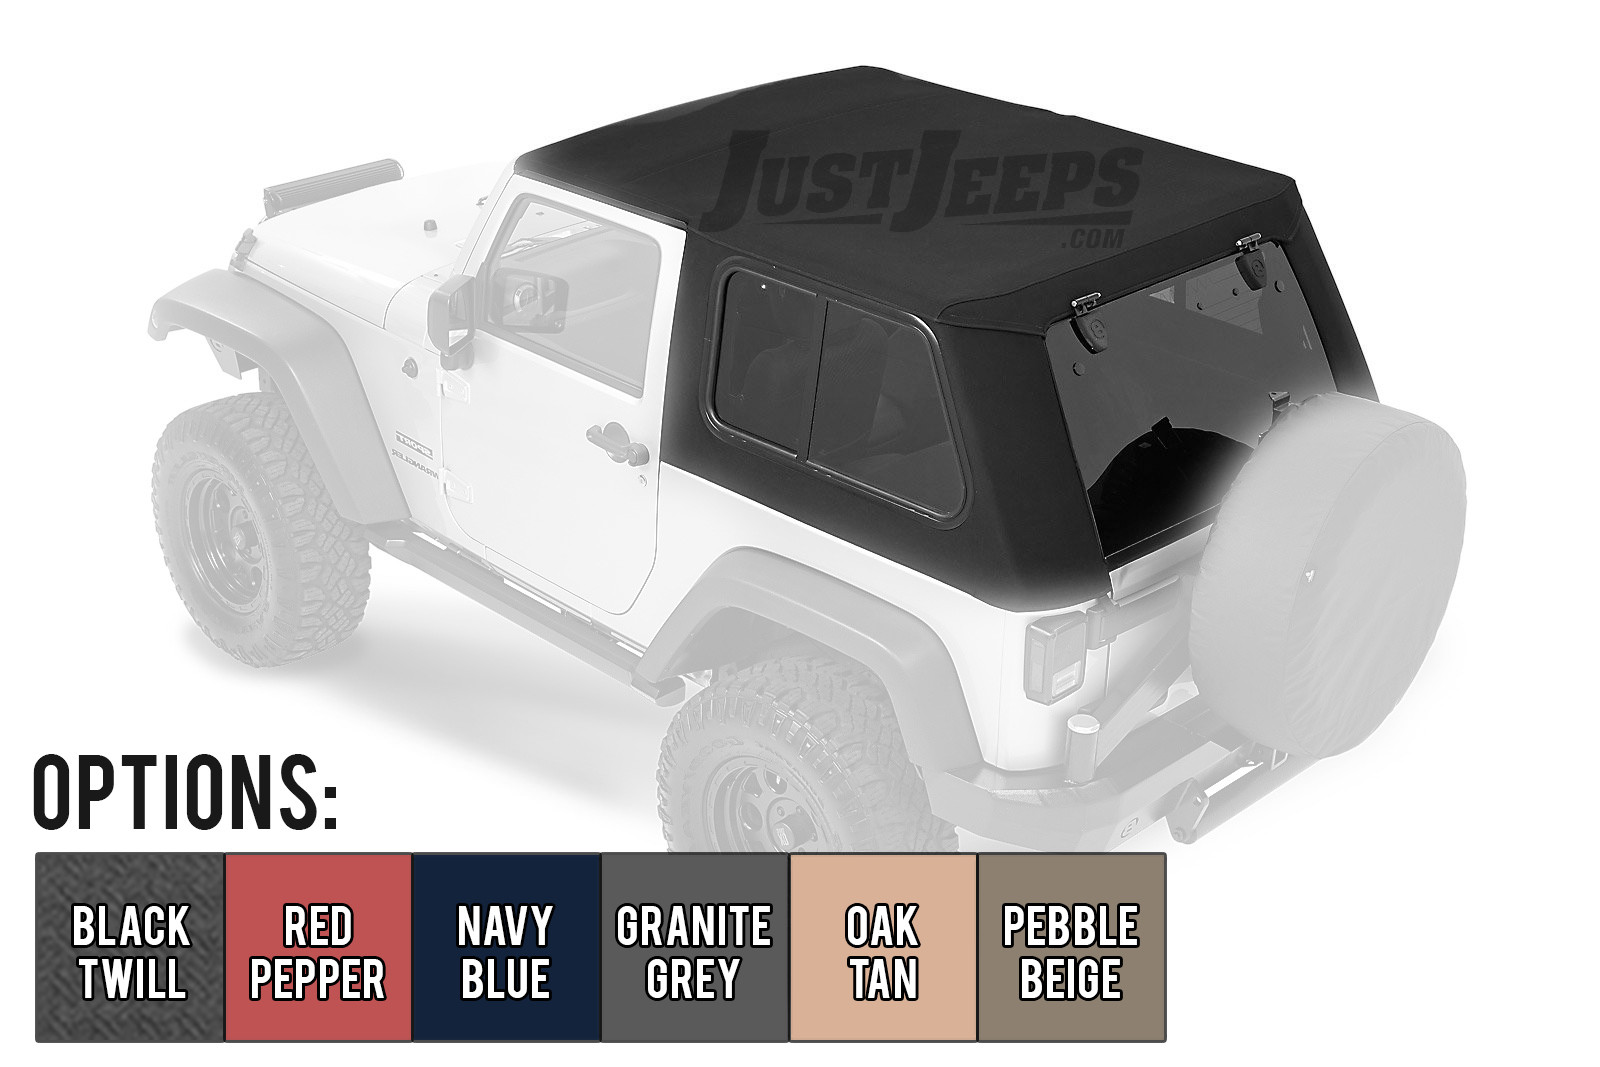 Just Jeeps Bestop Trp Pro Hybrid Soft Top With Tinted Removable Gl Windows For 2007 18 Jeep Wrangler Jk 2 Door Models Tops Complete Kits